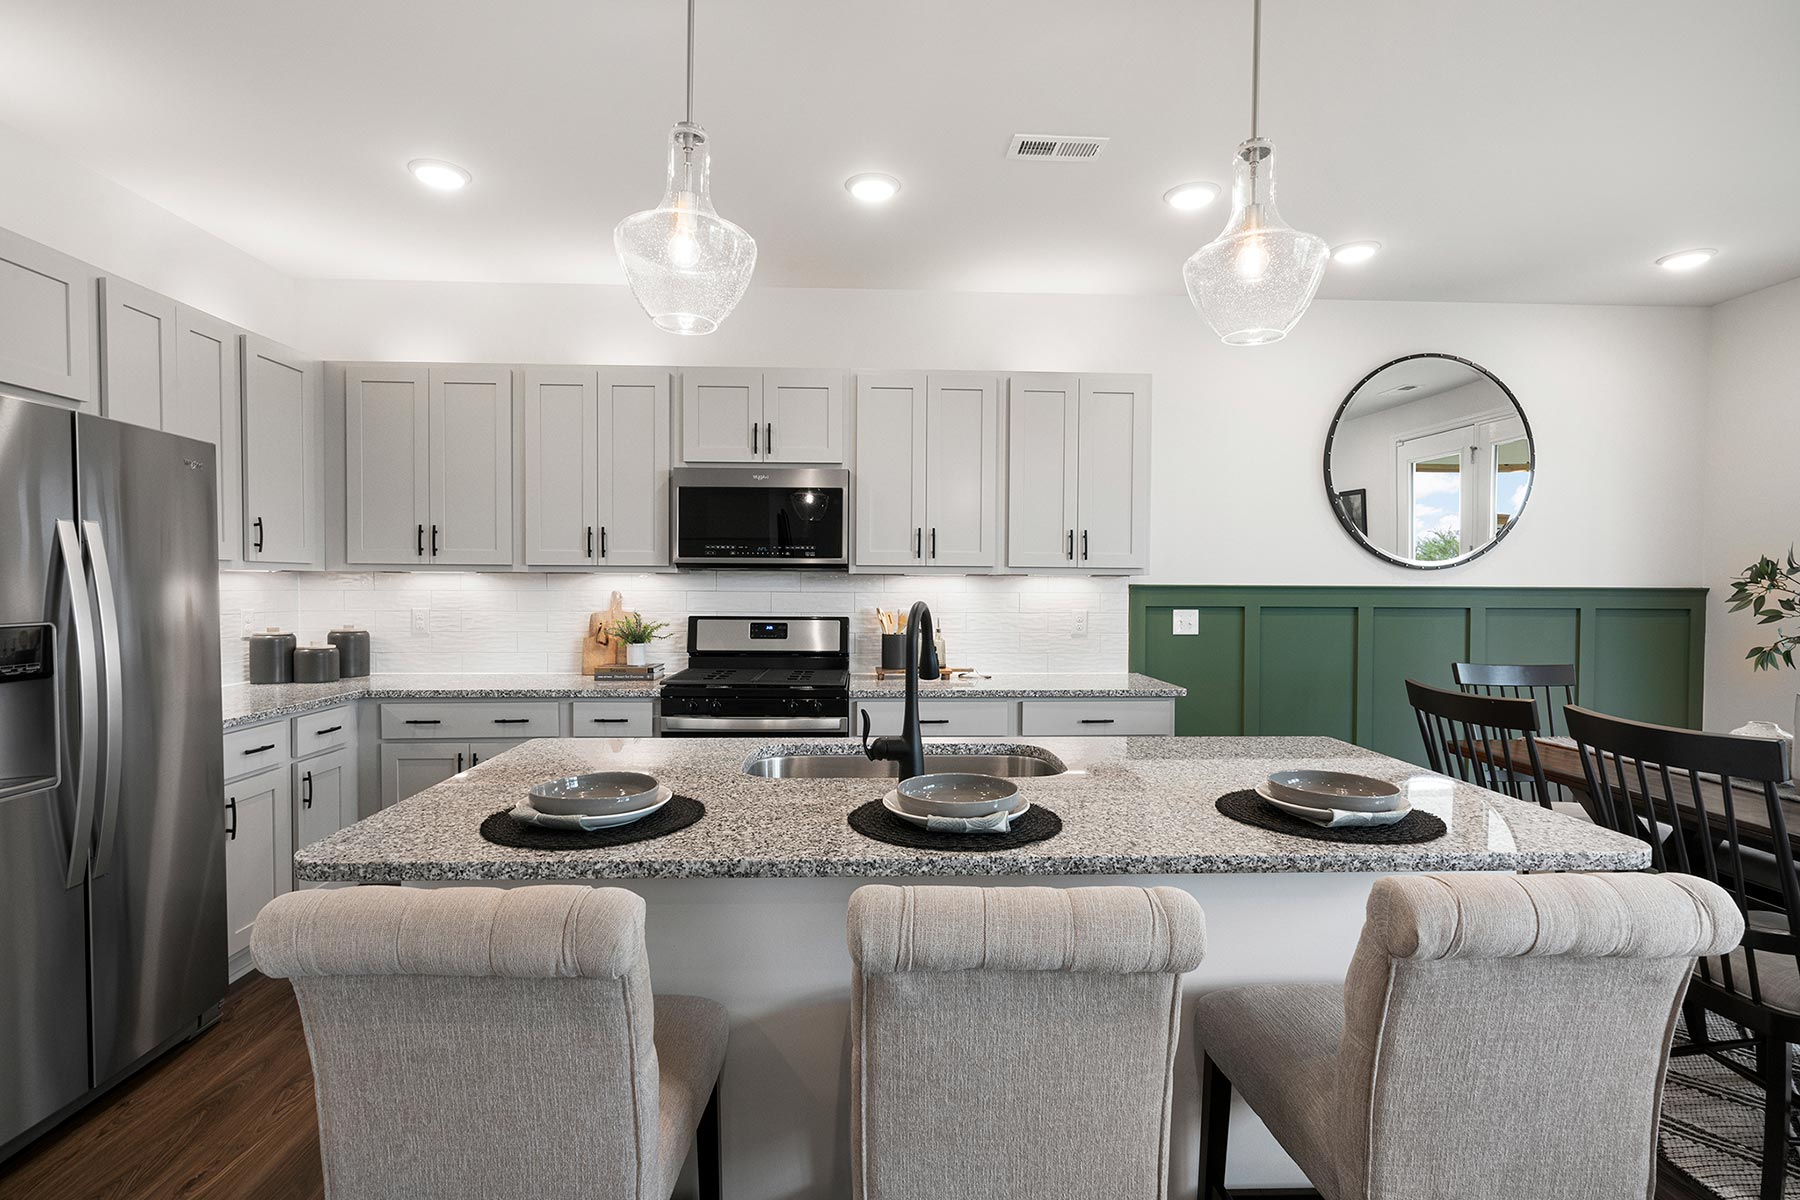 Gaines Plan Kitchen at Oak Park in Garner North Carolina by Mattamy Homes